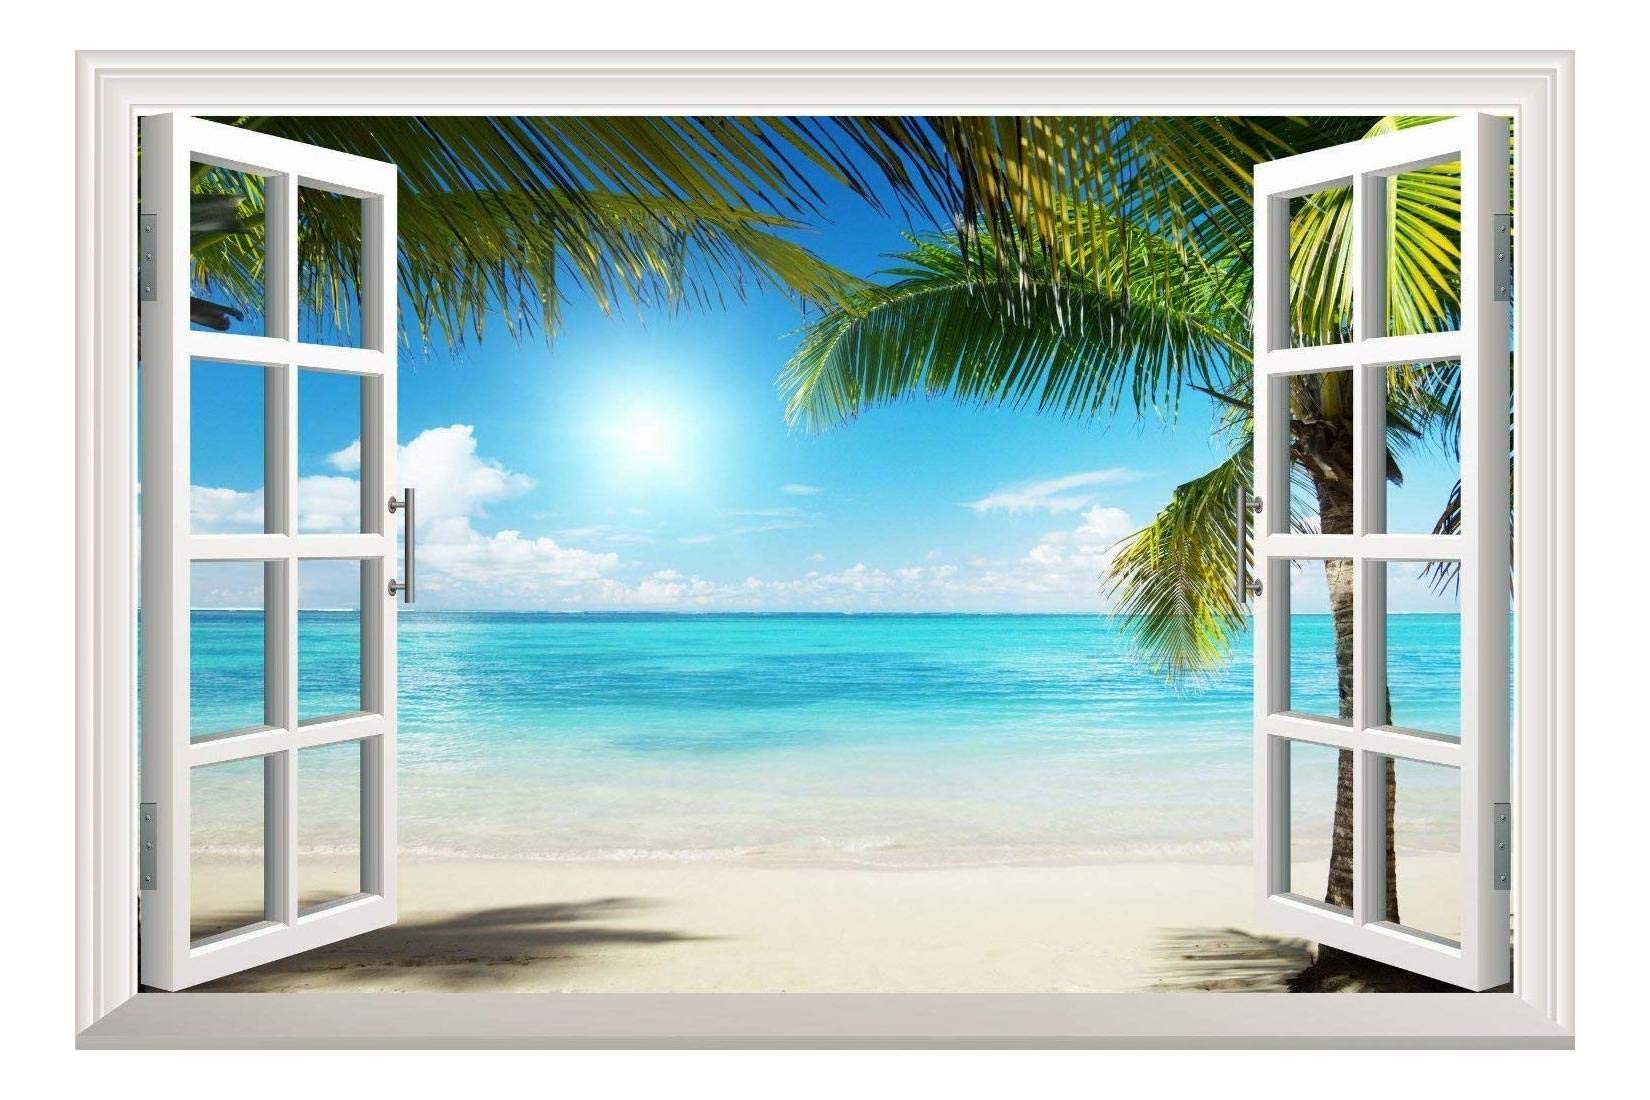 Wall26 White Sand Beach with Palm Tree Open Window Wall Mural, Removable Sticker, Home Decor - 36x48 inches by wall26 (Image #1)